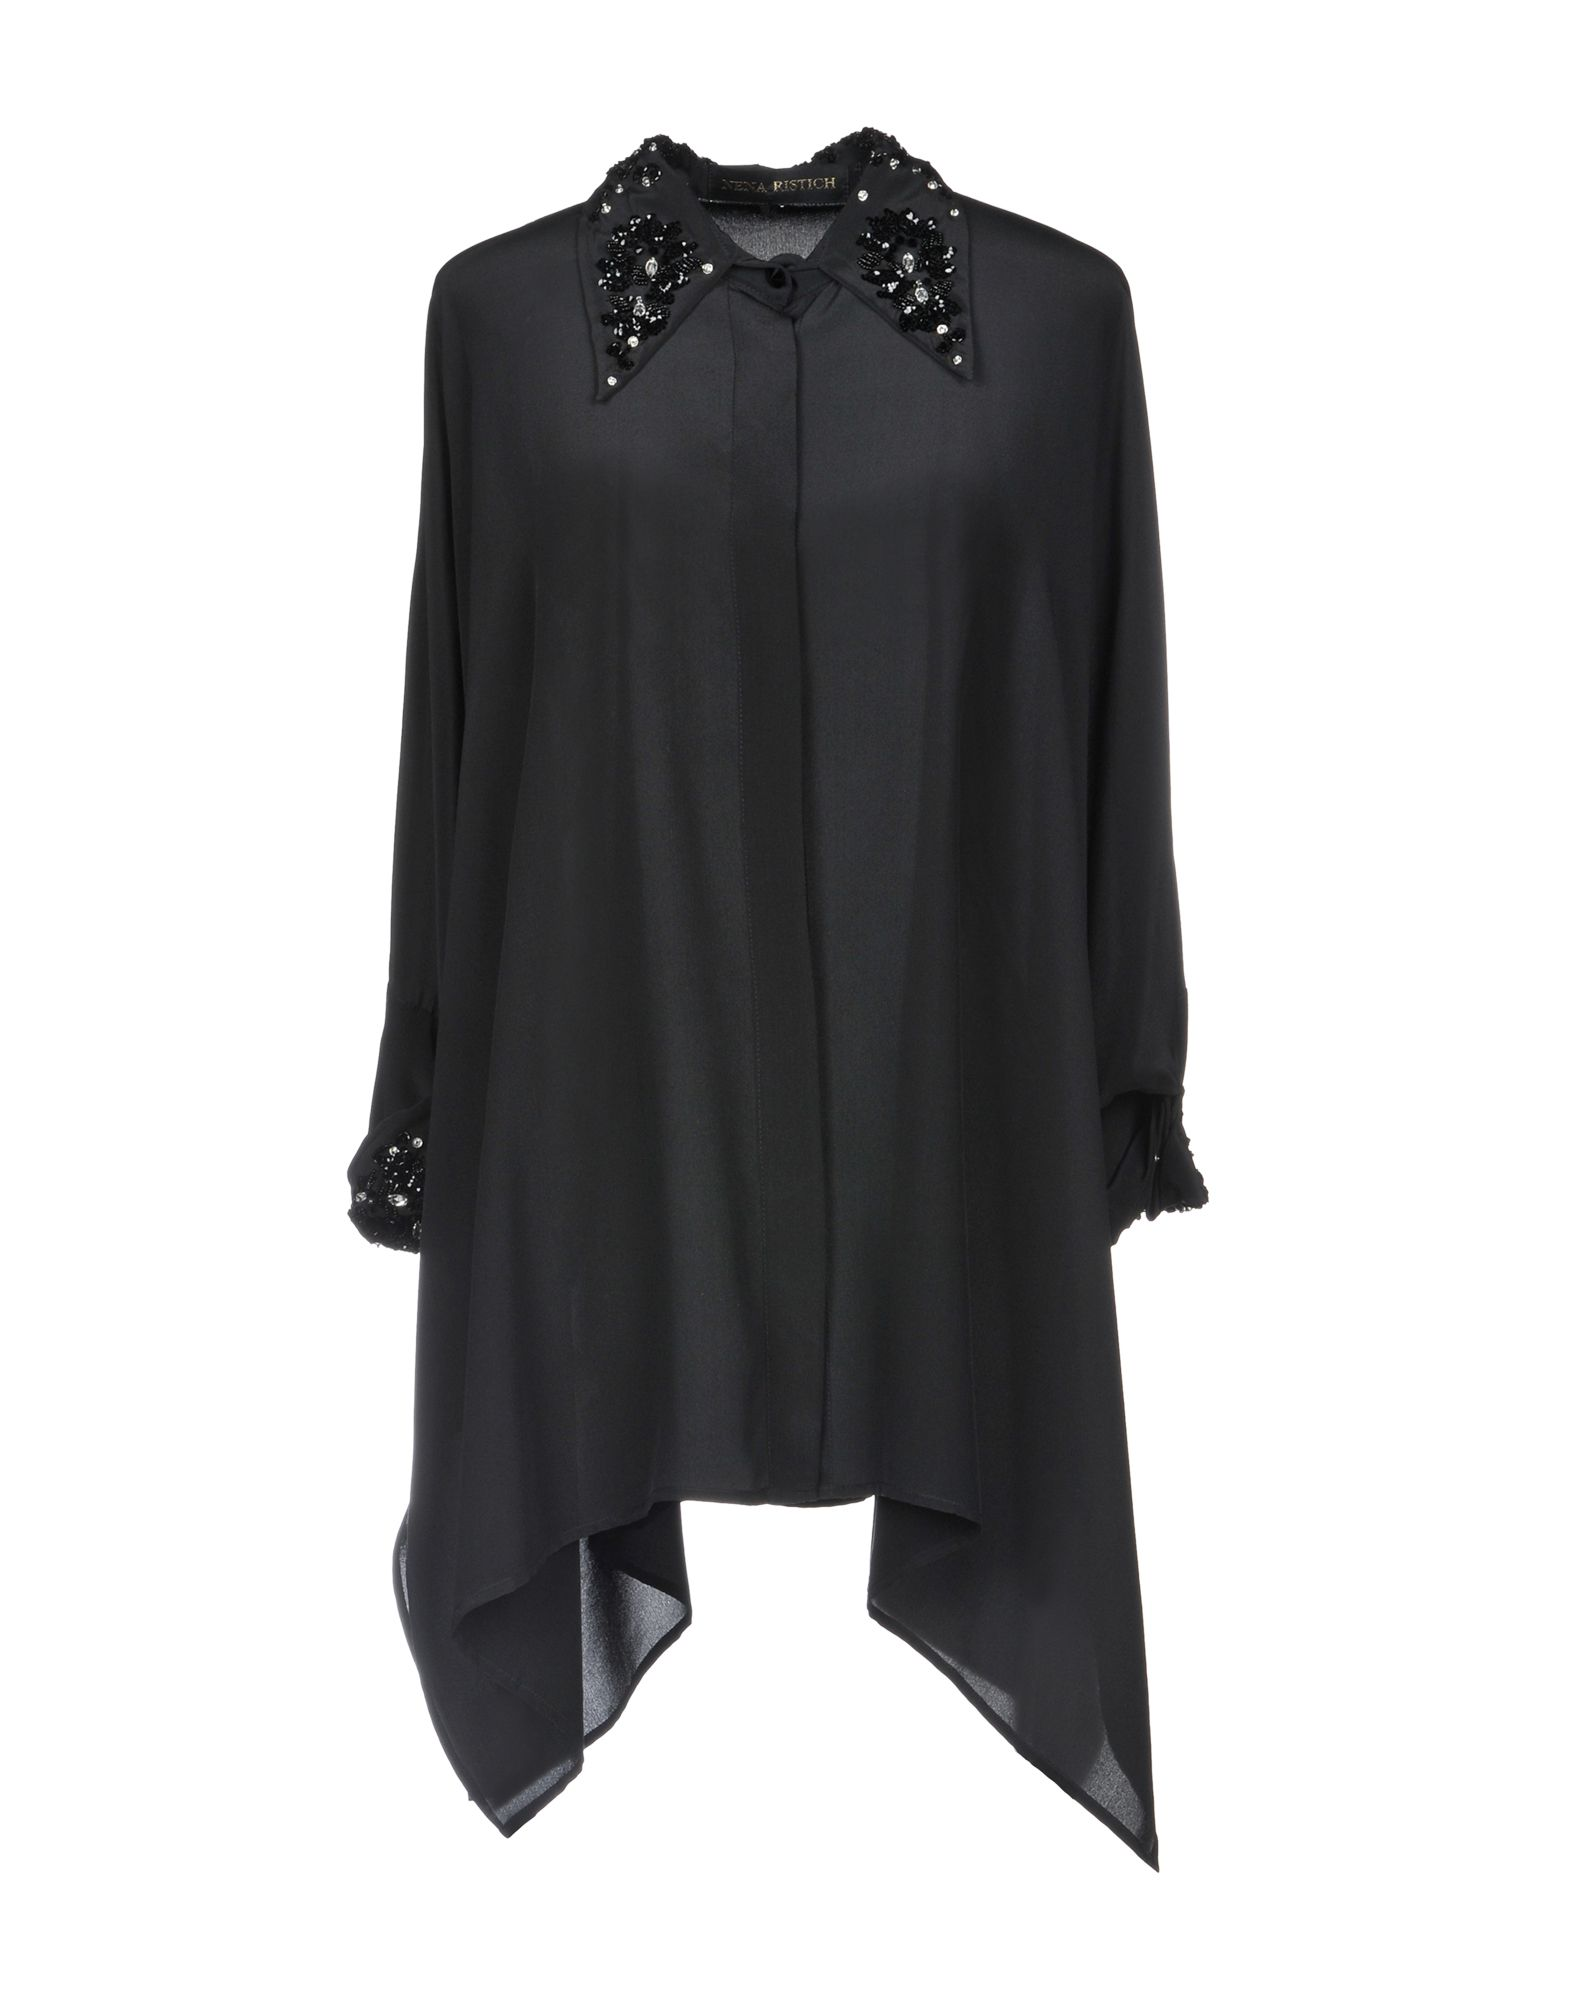 NENA RISTICH Silk Shirts & Blouses in Black